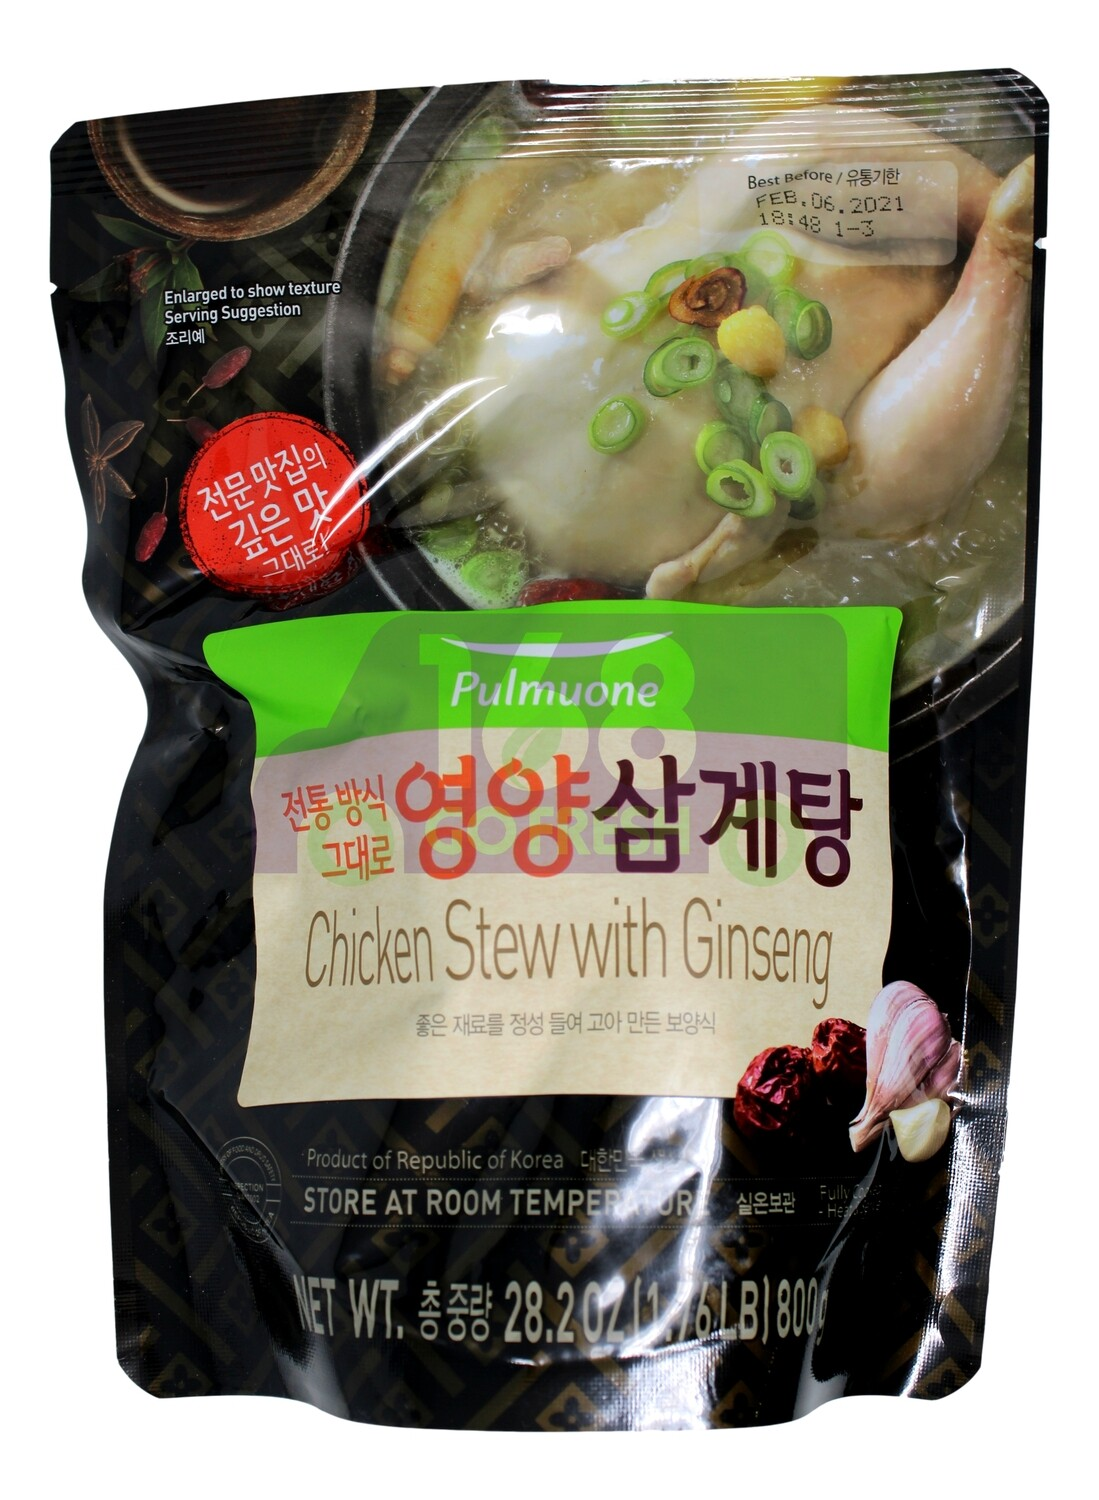 PULMUONE WHOLE COOKED CHICKEN  STEW WITH GINSENG 韩国产 Pulmuone即食人参红枣炖整鸡(800G)